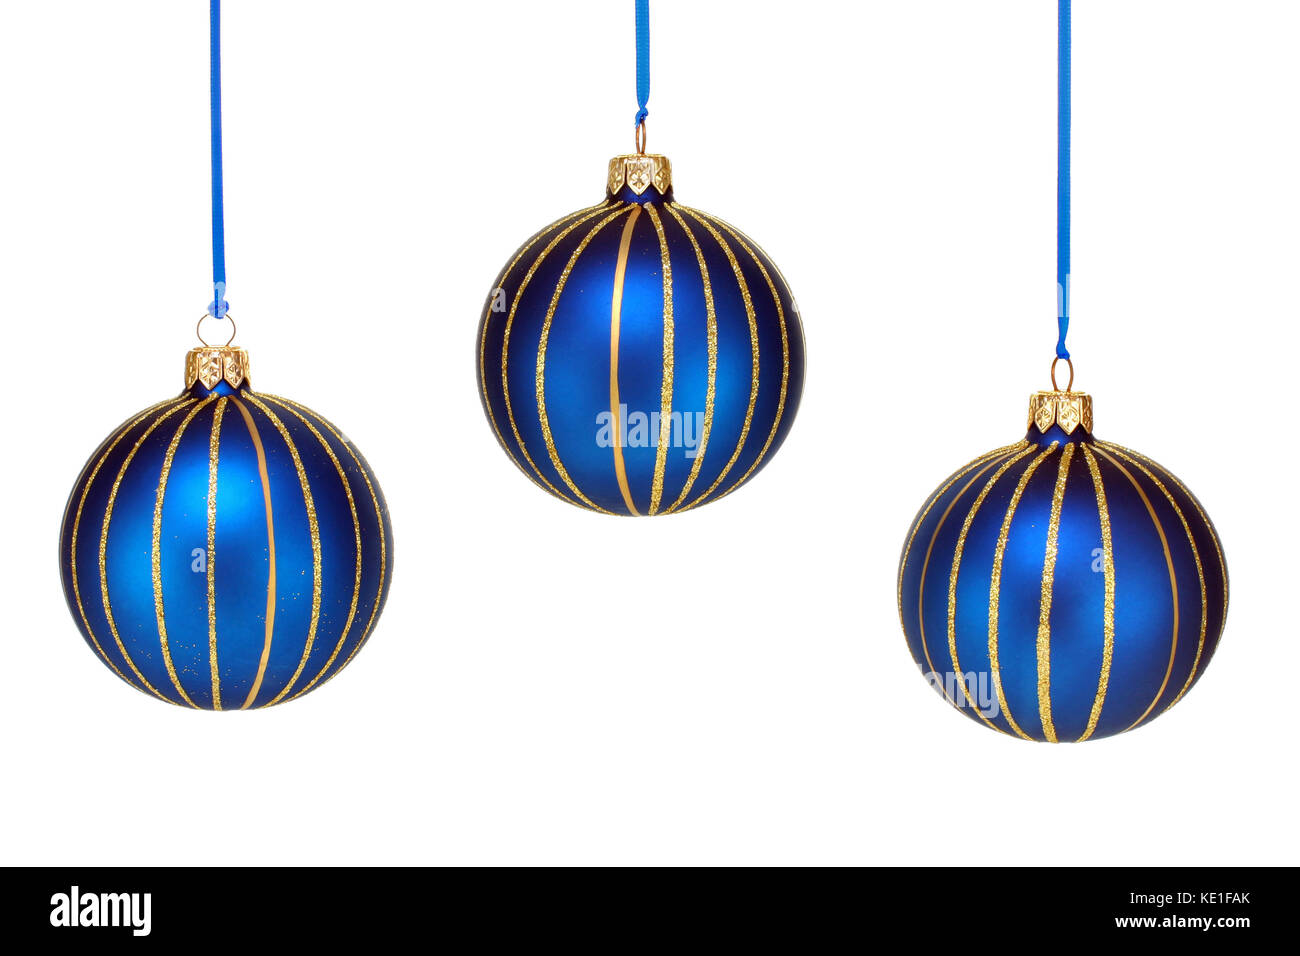 three blue and gold christmas ornaments hanging against a white background stock image - Blue And Gold Christmas Decorations